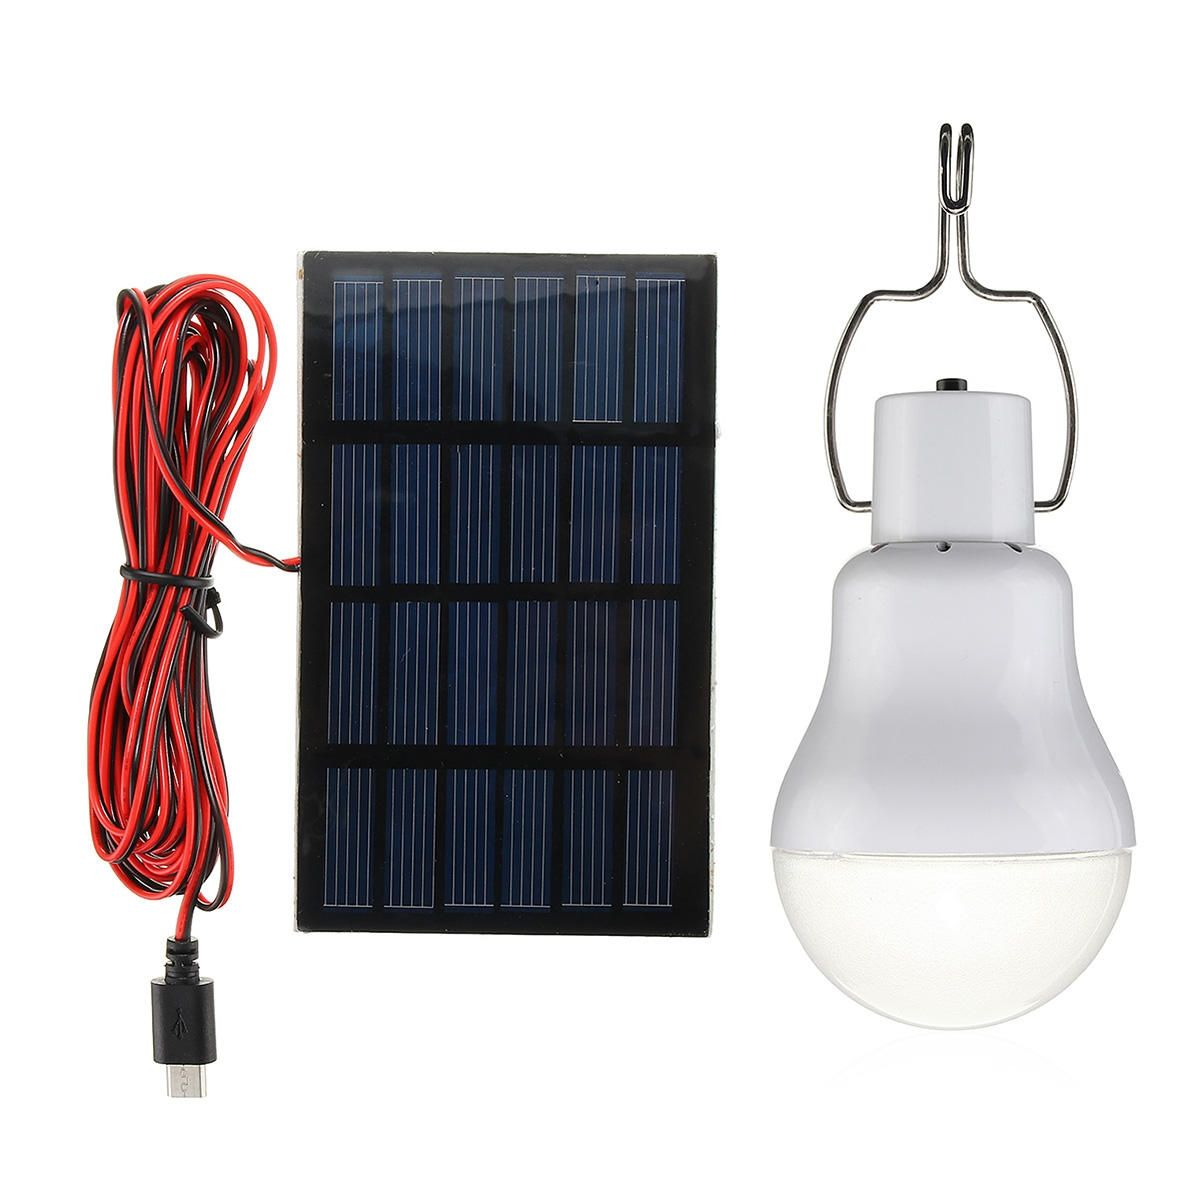 5v 1w Solar Panel Powered Led Bulb Light Portable Outdoor Camping Specifications Voltage 1w 5v Light Color Whi Solar Panels Led Bulb Led Light Bulb